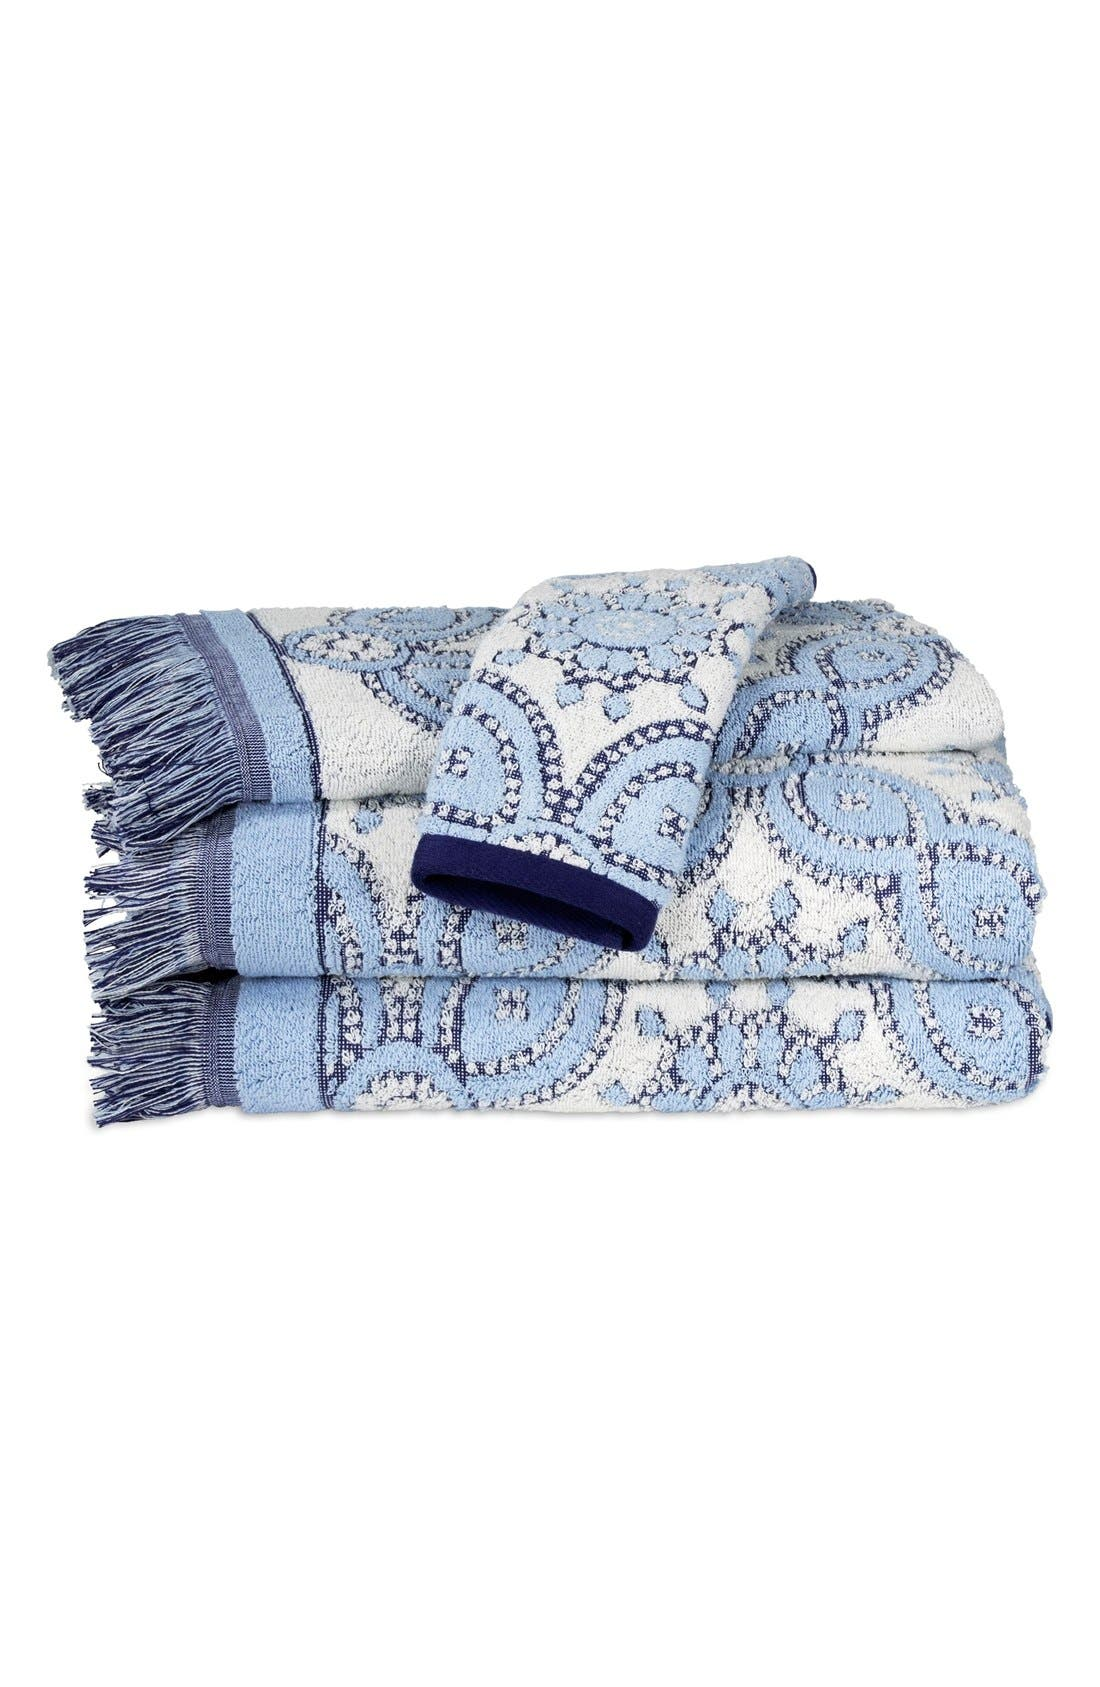 JOHN ROBSHAW 'Petra' Cotton Bath Towel